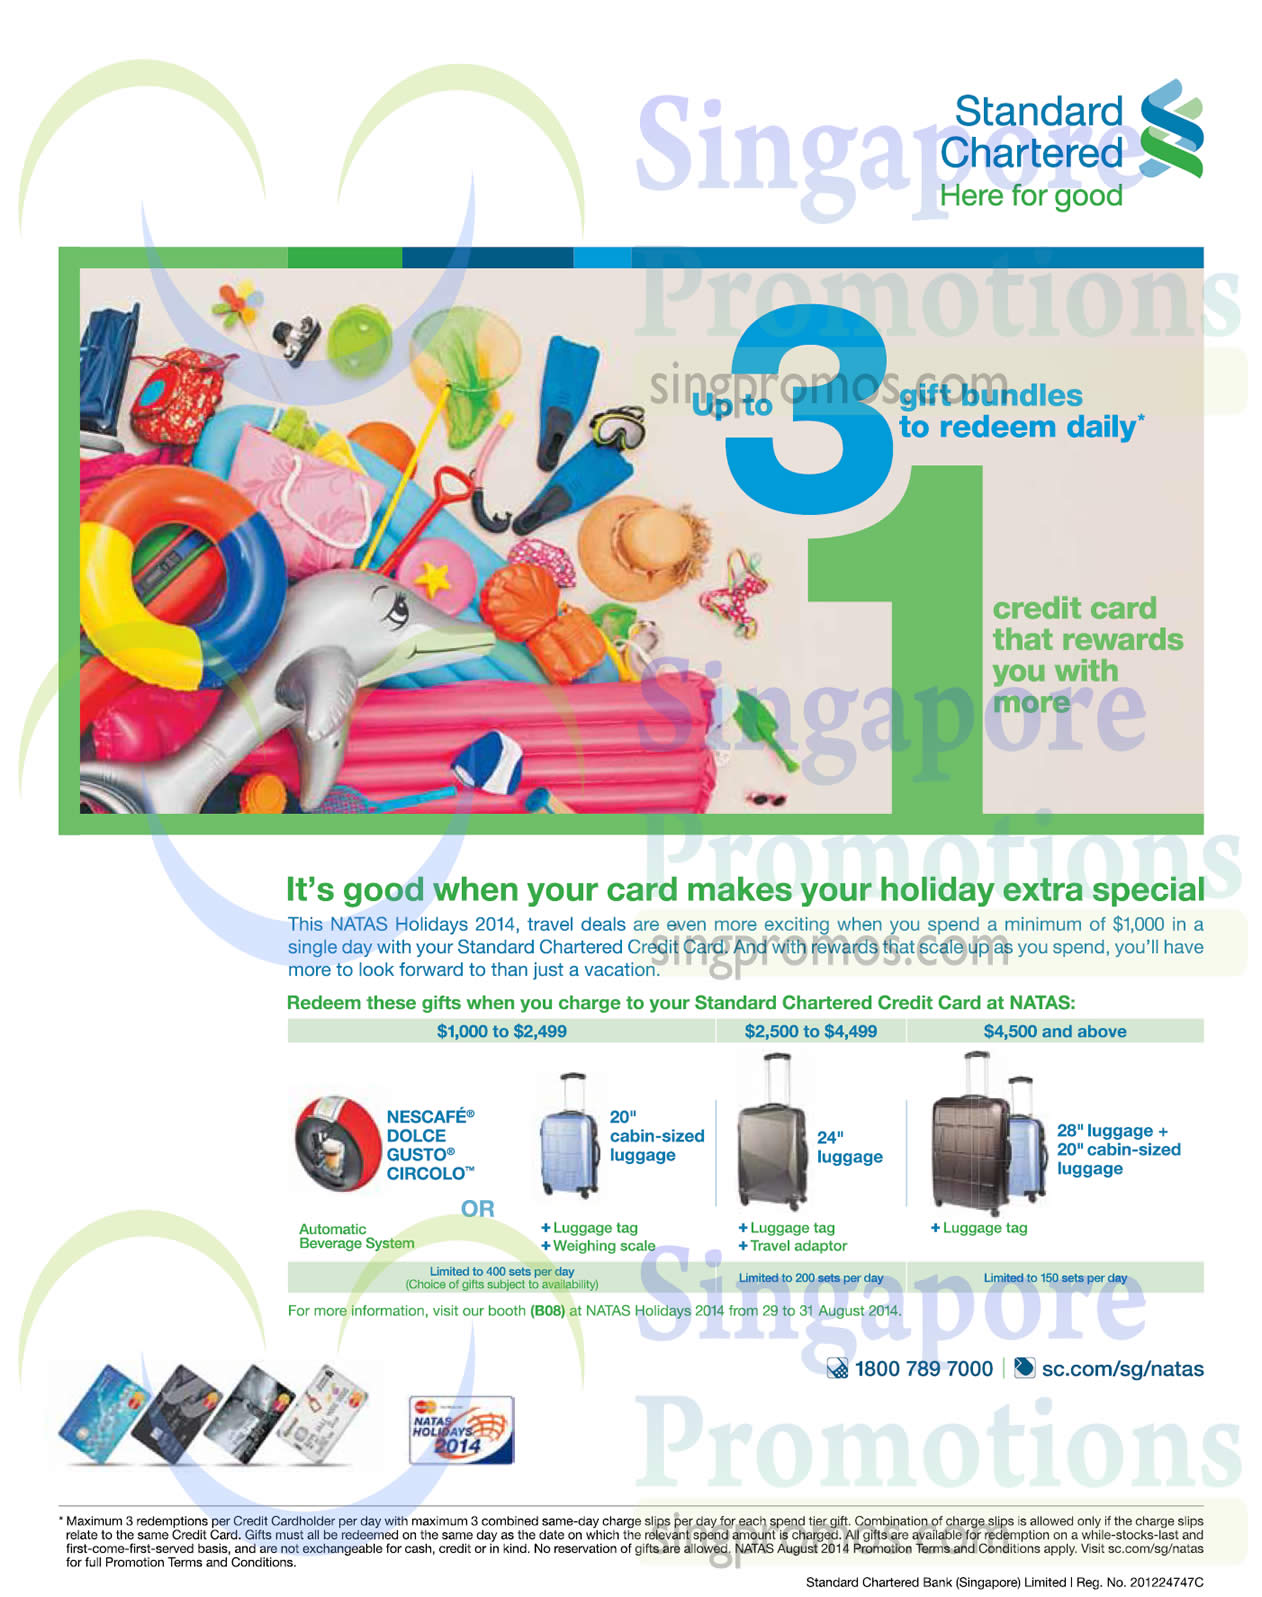 28 Aug Standard Chartered Free Luggages, Nescafe Dolce Gusto